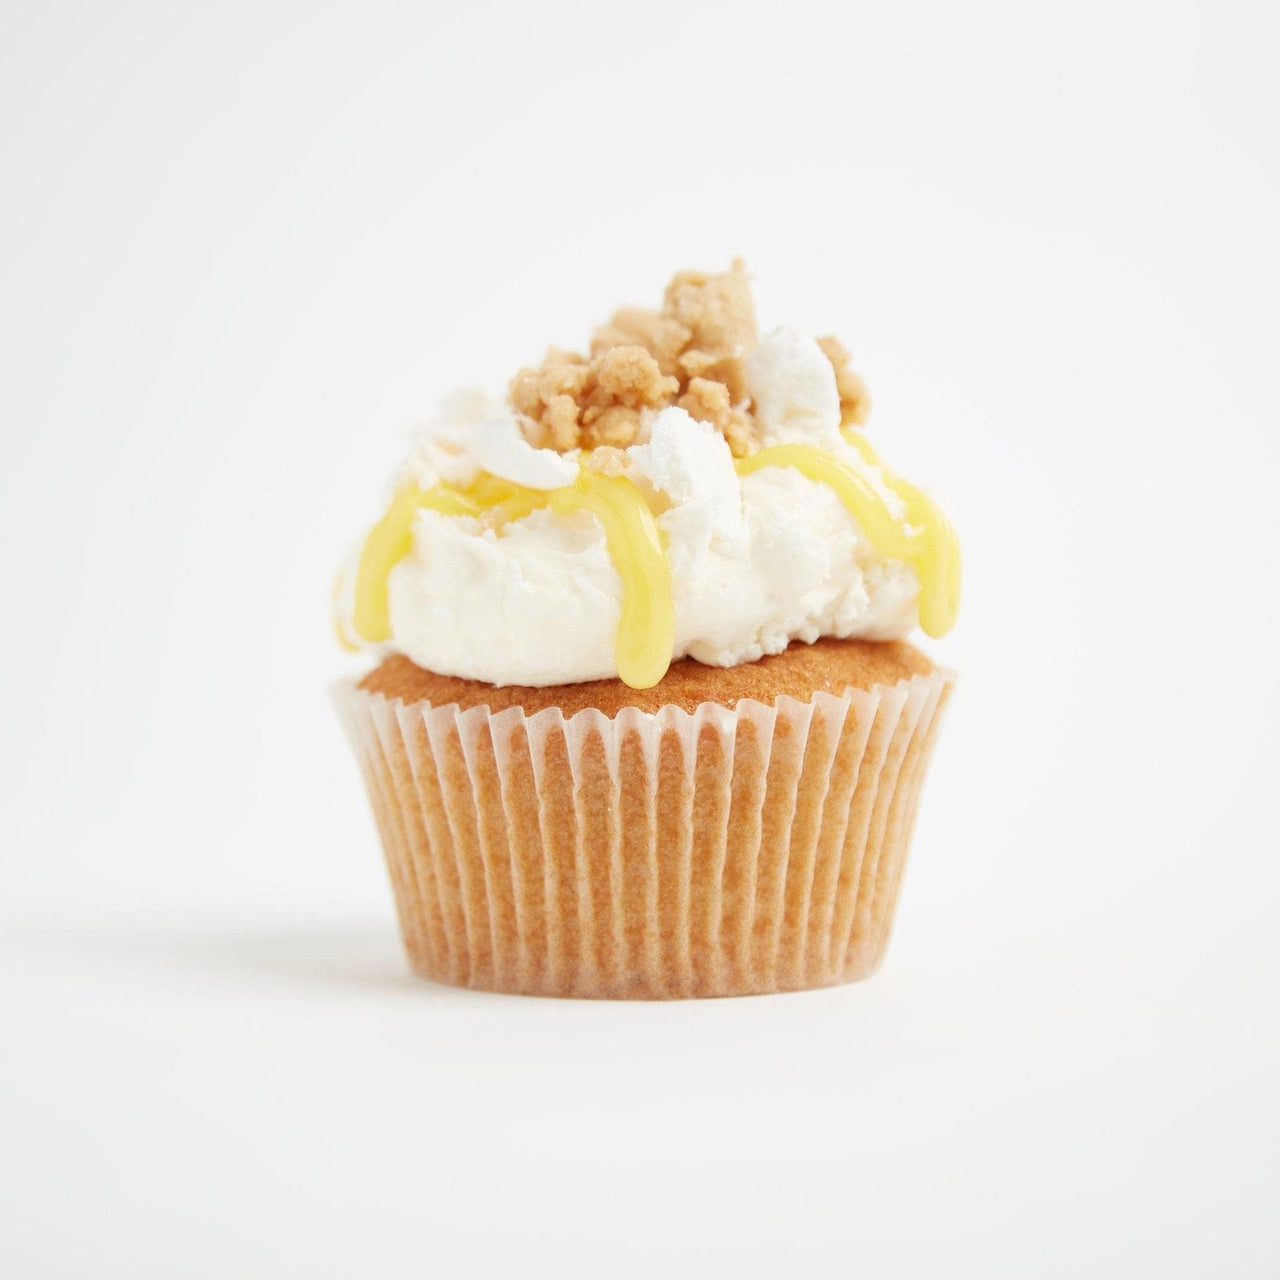 Lemon Meringue Pie Cupcakes by Crumbs & Doilies